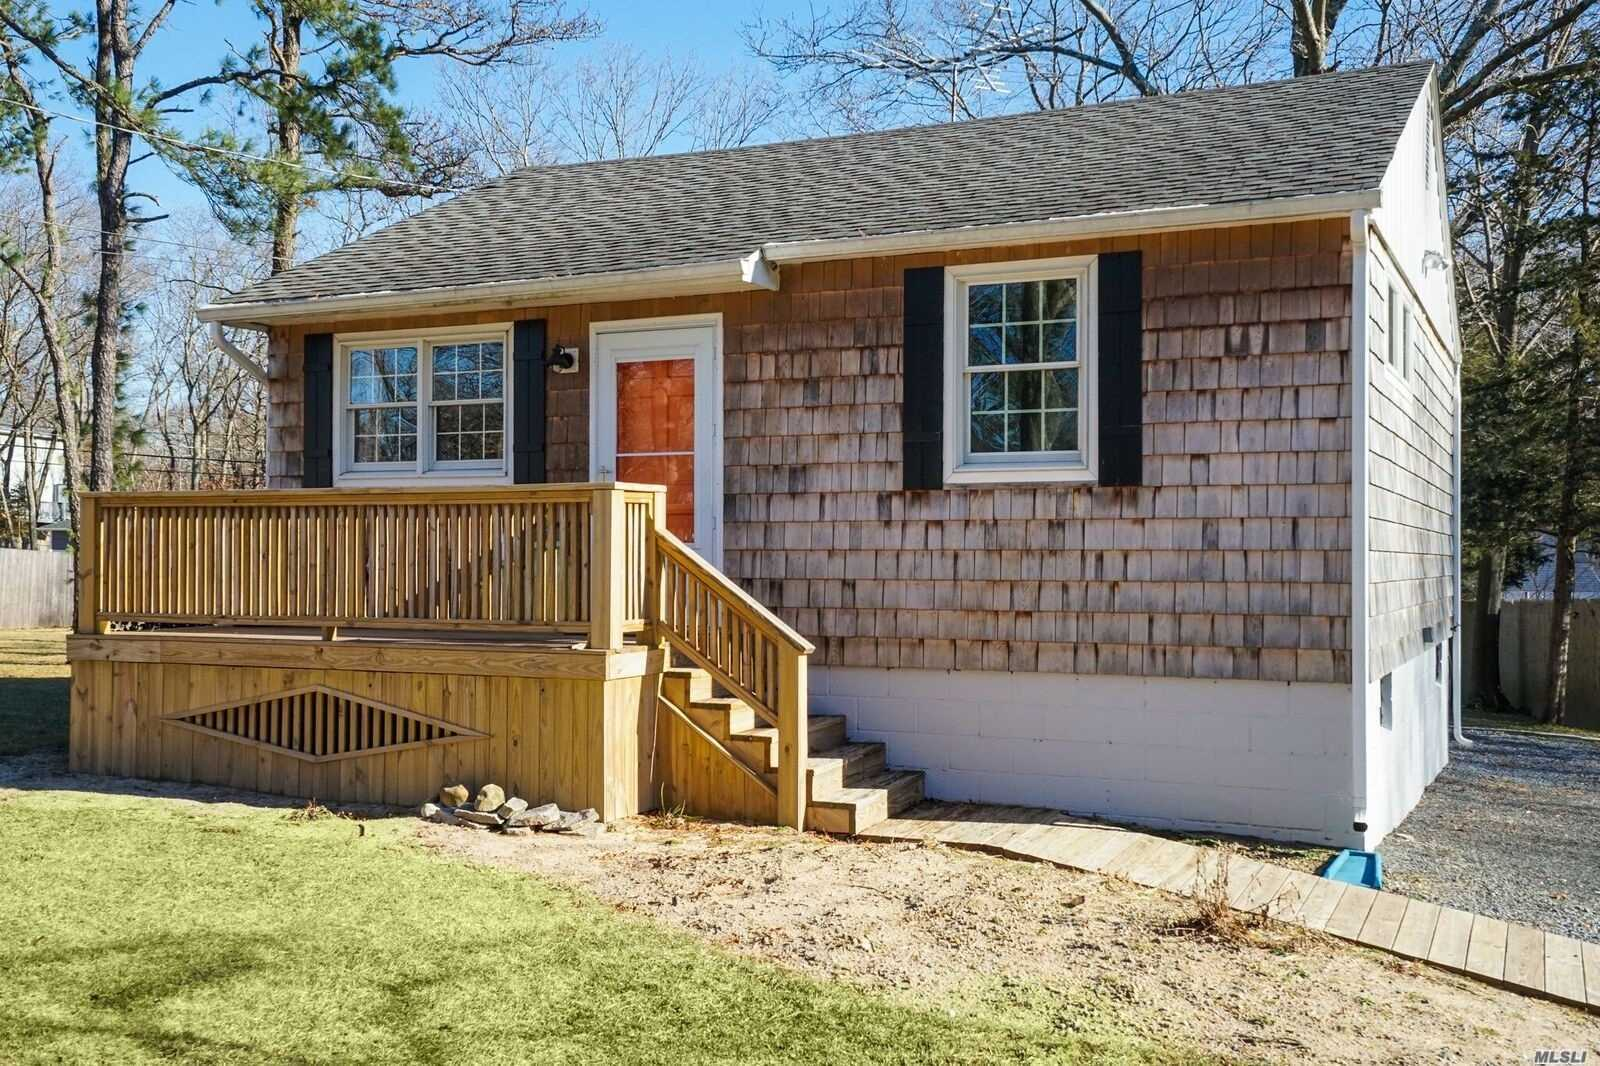 Light & Bright Completely Gut Renovated Ranch On Gorgeous Level .34 Acre Property In Lake Panamoka Private Lake Community With 3 Beaches & Community Clubhouse (Dues Apply)...All New Sheetrock, New Andersen Windows, Plumbing, Electric, New Kitchen With Oak Cabinetry & Andersen French Door, Renovated Bathroom, New Cedar Siding, Architectural Roof, Cac, Full Basement With Inside Entrance, New 16X24 Deck & 6X12 Front Porch, 10X16 Shed, 2 Driveways (1 Circular)Large Attic, Gas Propane Heating..Mint + Condition!